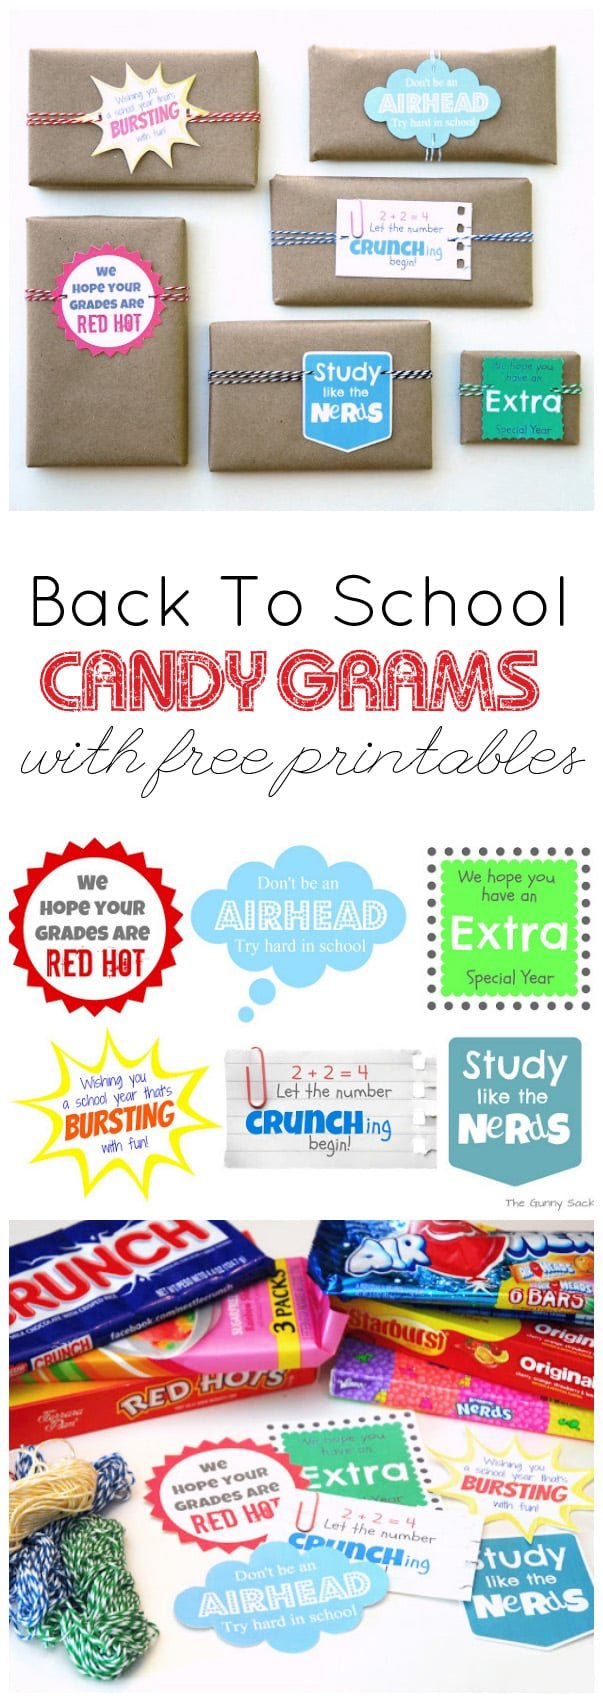 Back_To_School_Candy_Grams